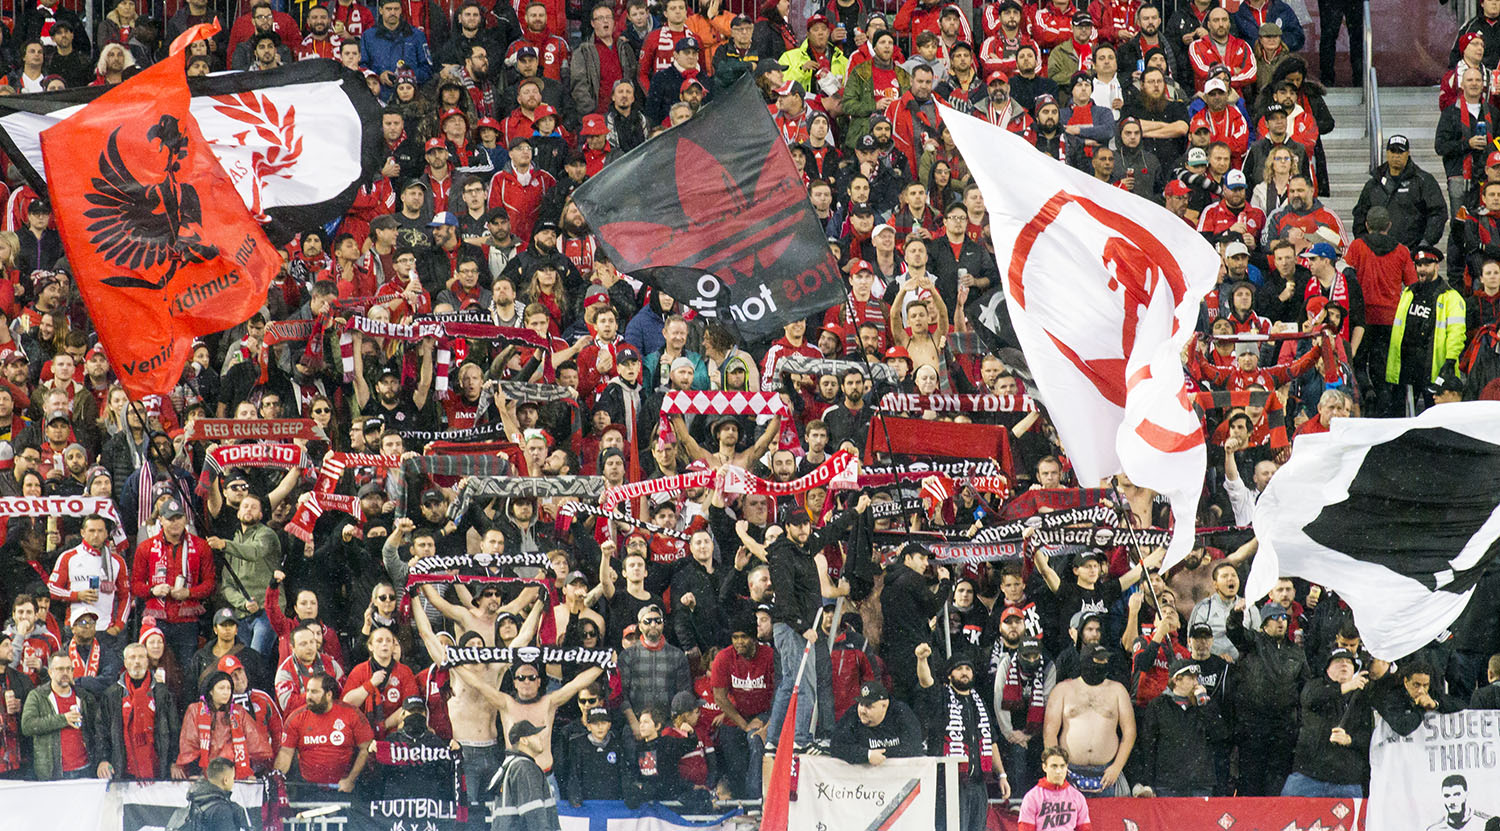 The South End Supporter's section supporting the club for the full 90 minutes during a playoff match with NYRB in 2017. Image by Dennis Marciniak of denMAR Media.